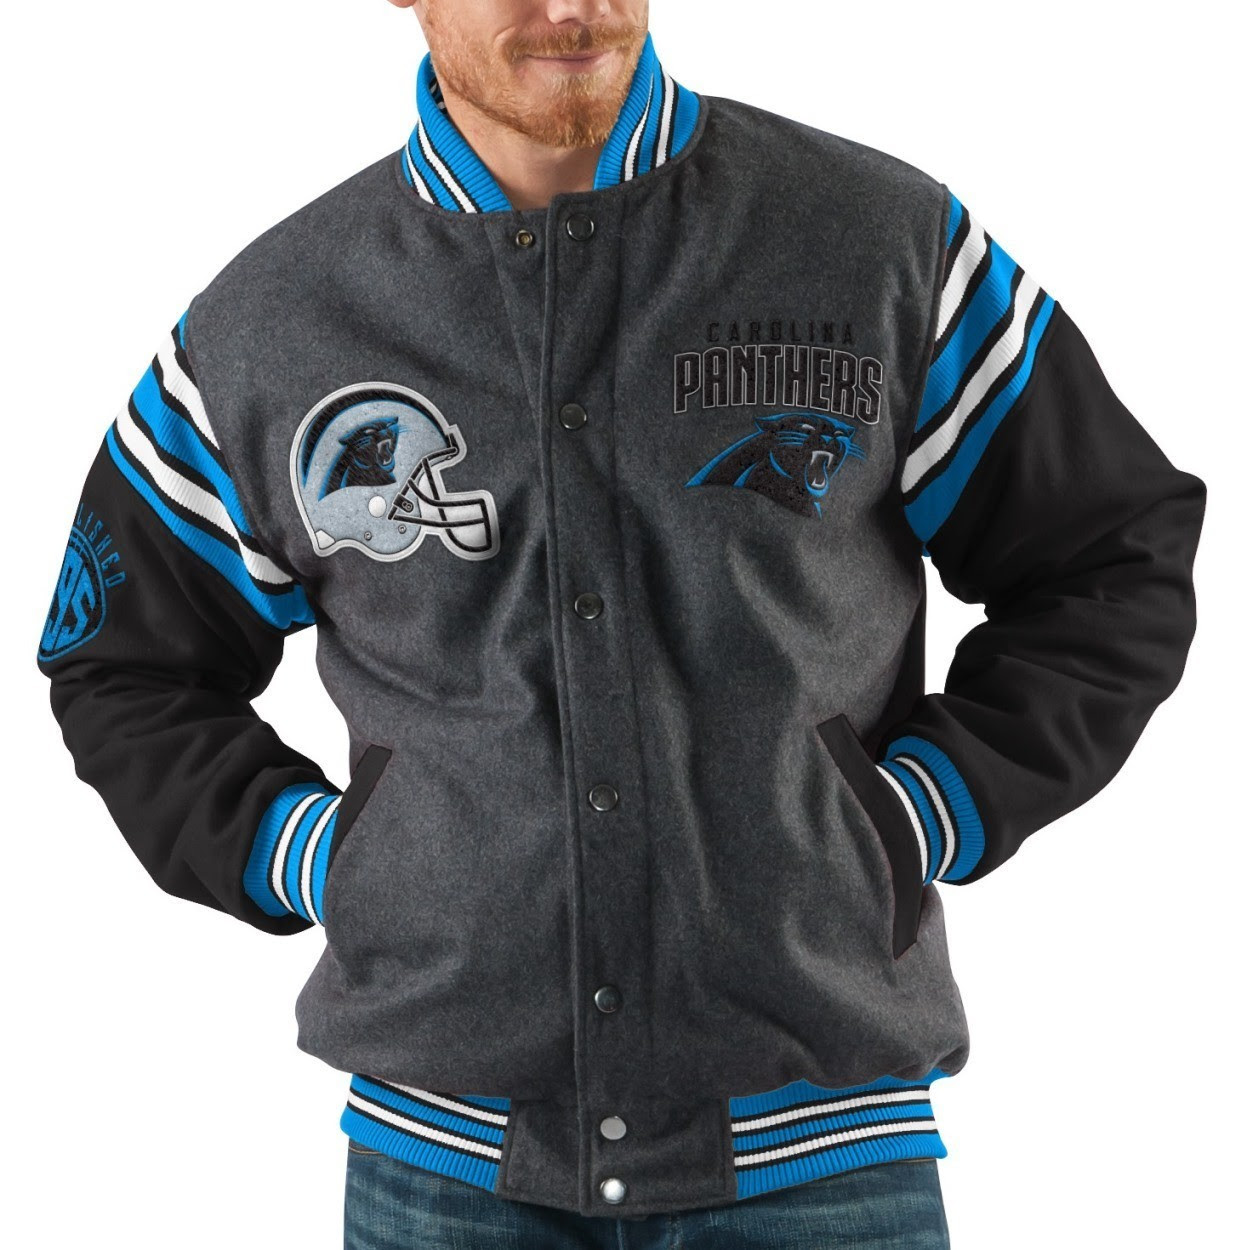 Carolina Panthers NFL Mens GIII quot;Edgequot; Reversible Wool Jacket  eBay